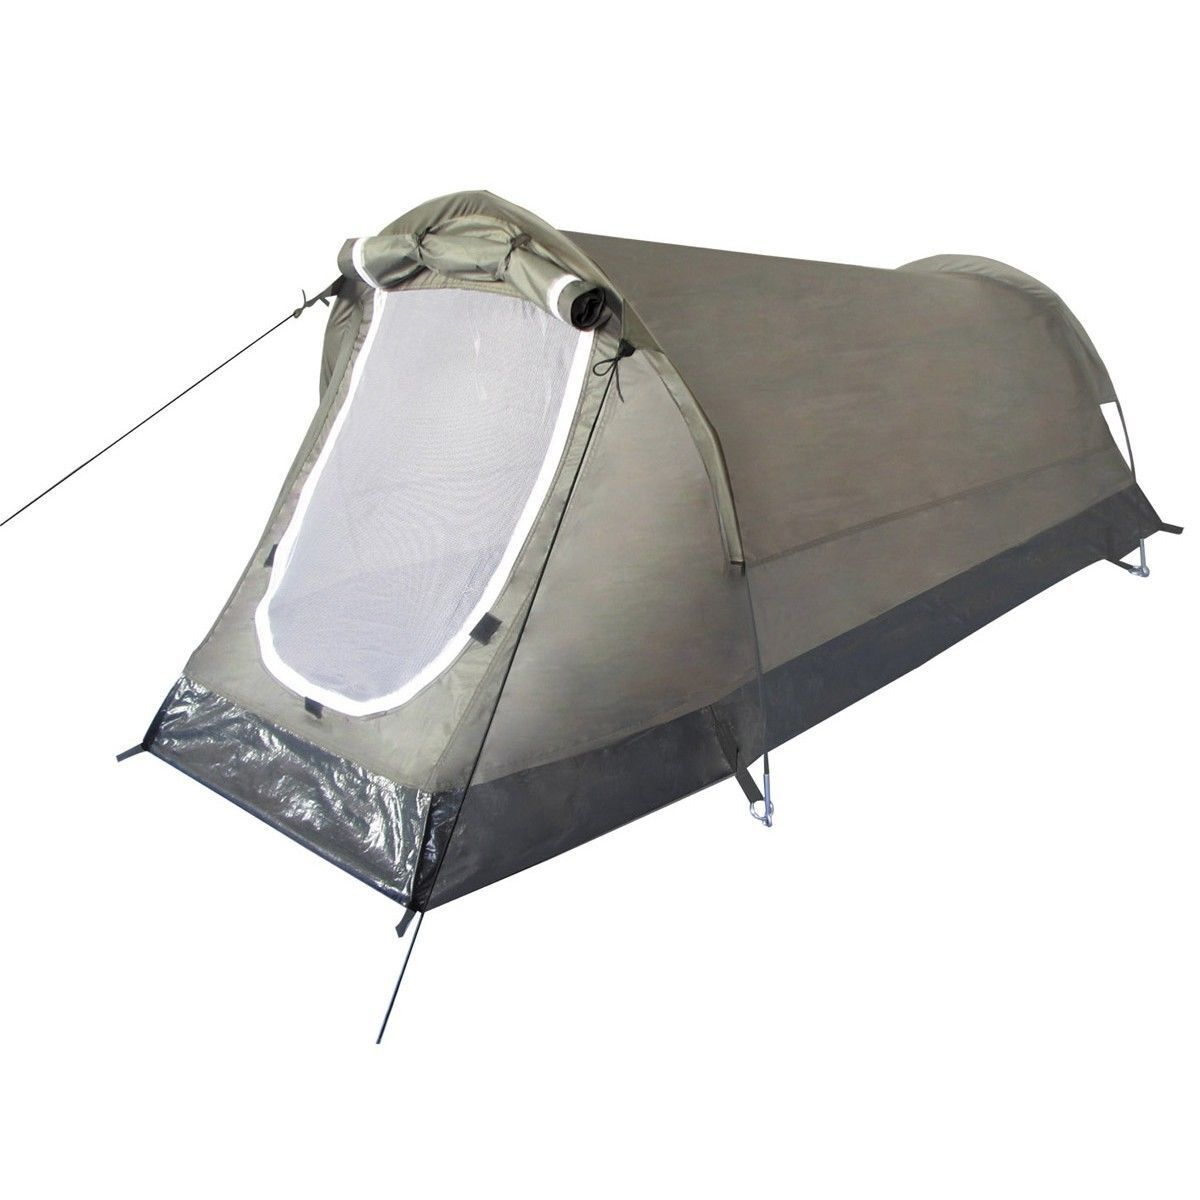 Military Tactical Hiking Camping Outdoor Tunnel Tent